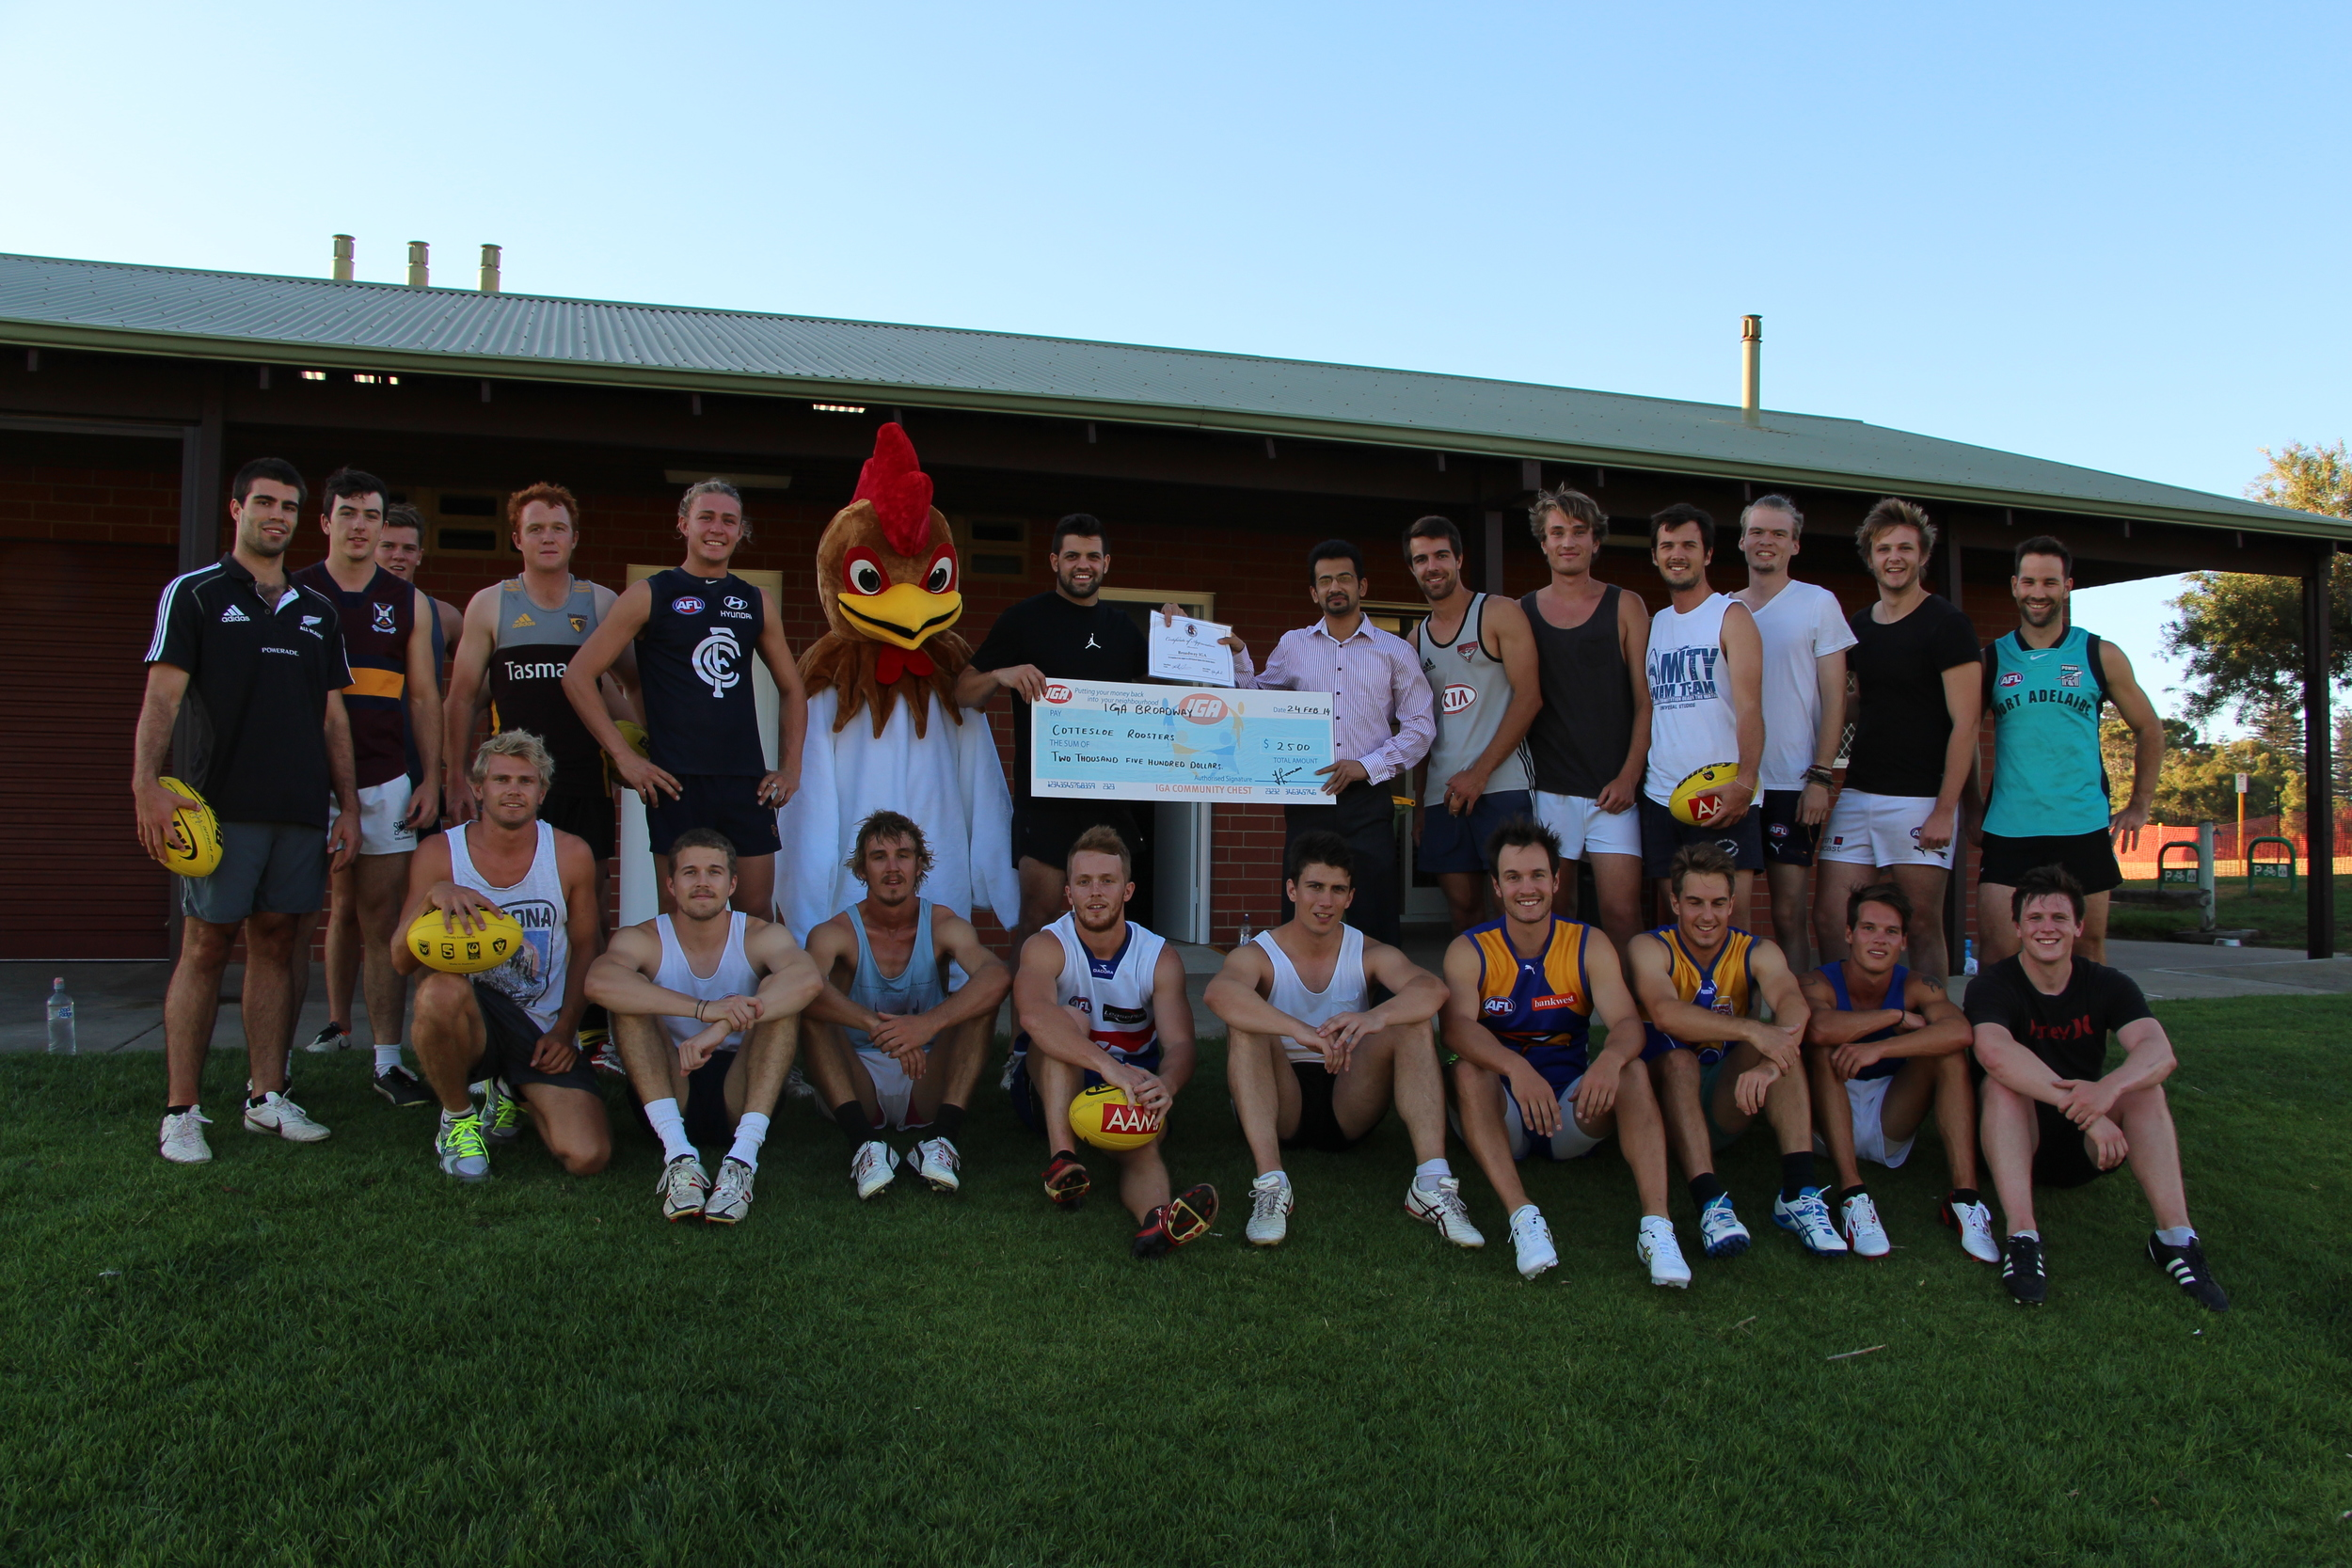 Pictured: Hassan from IGA Broadway Nedlands (sponsor) with players and mascot